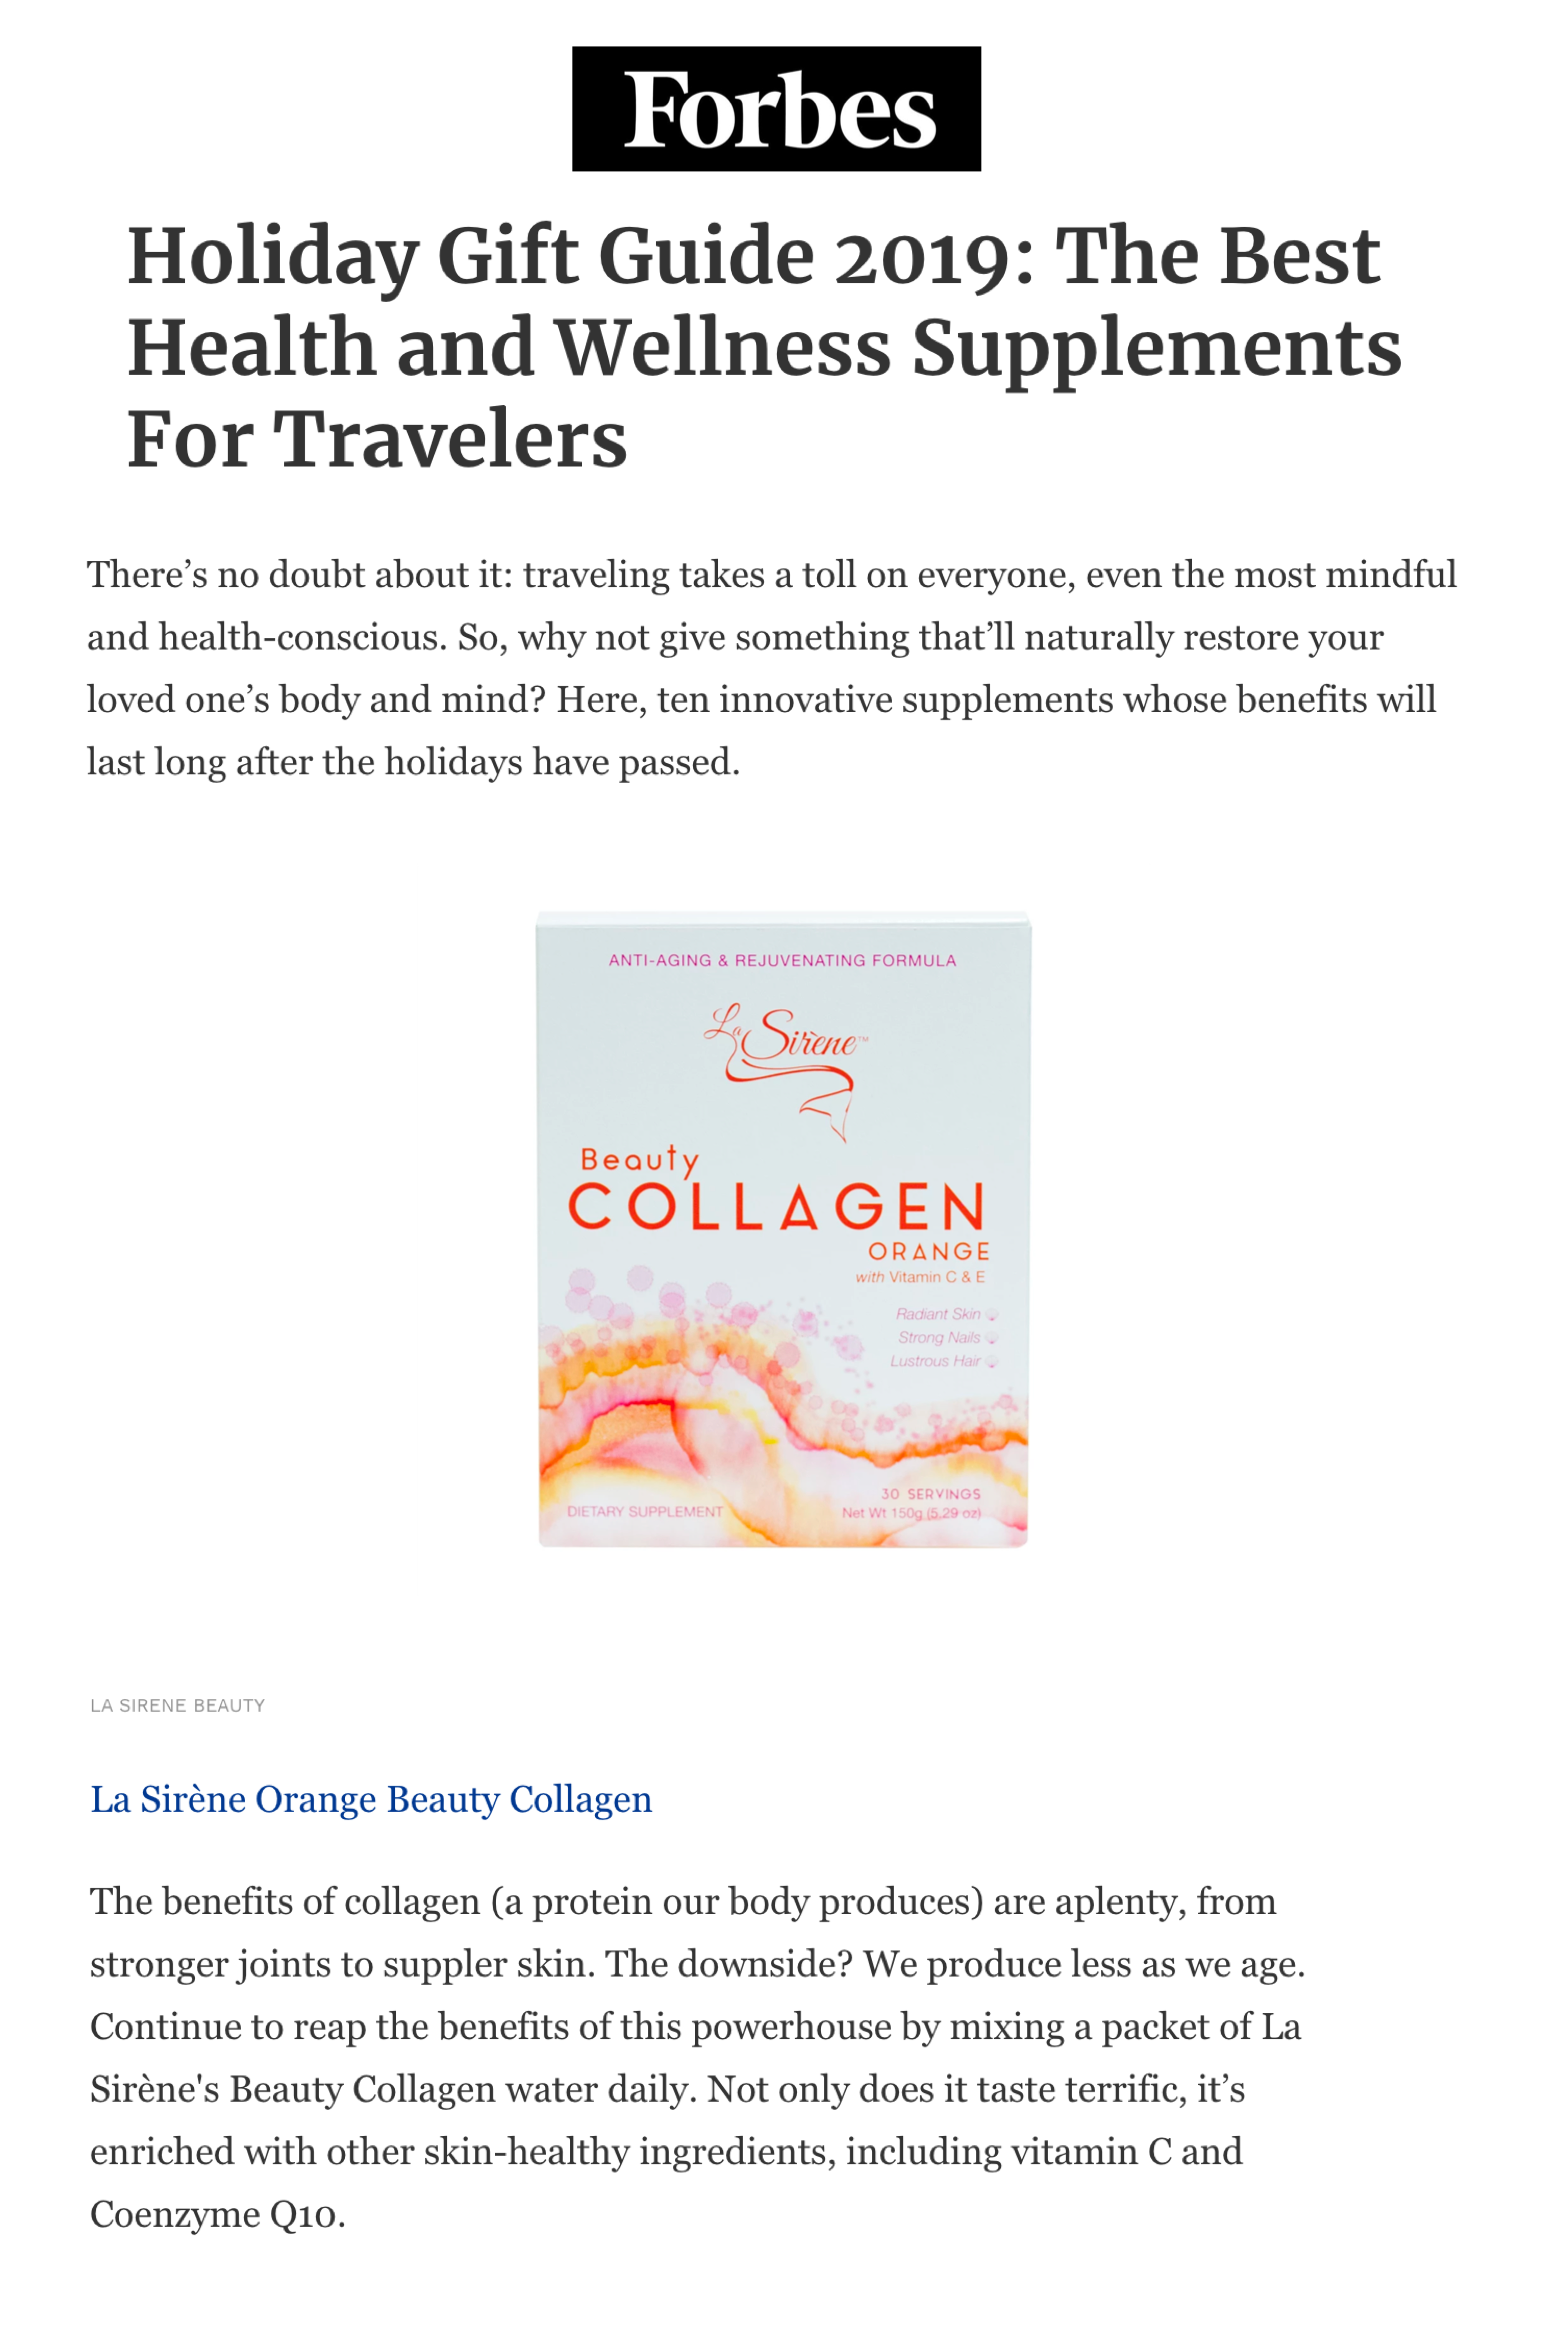 La Sirène x Forbes, Holiday Gift Guide 2019: The Best Health and Wellness Supplements For Travelers